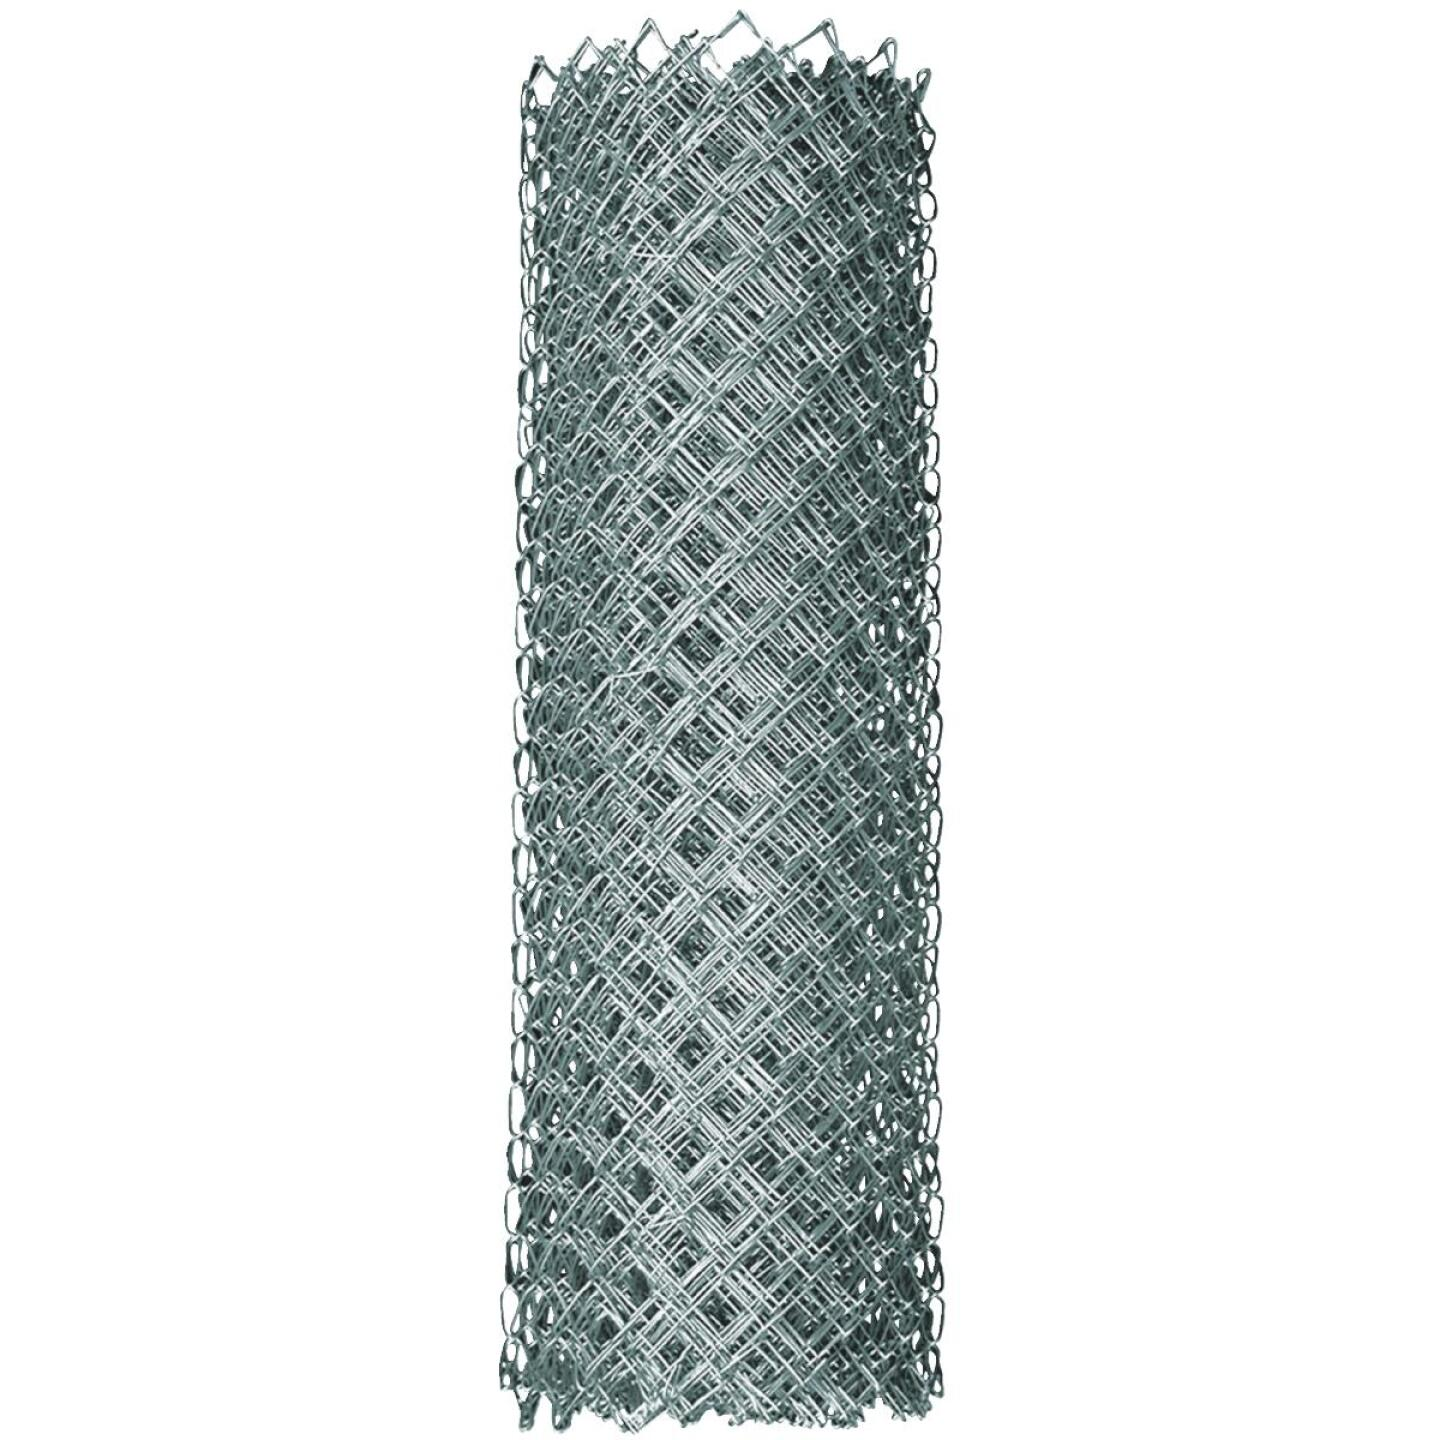 Midwest Air Tech 72 in. x 50 ft. 2-3/8 in. 11.5 ga Chain Link Fencing Image 1